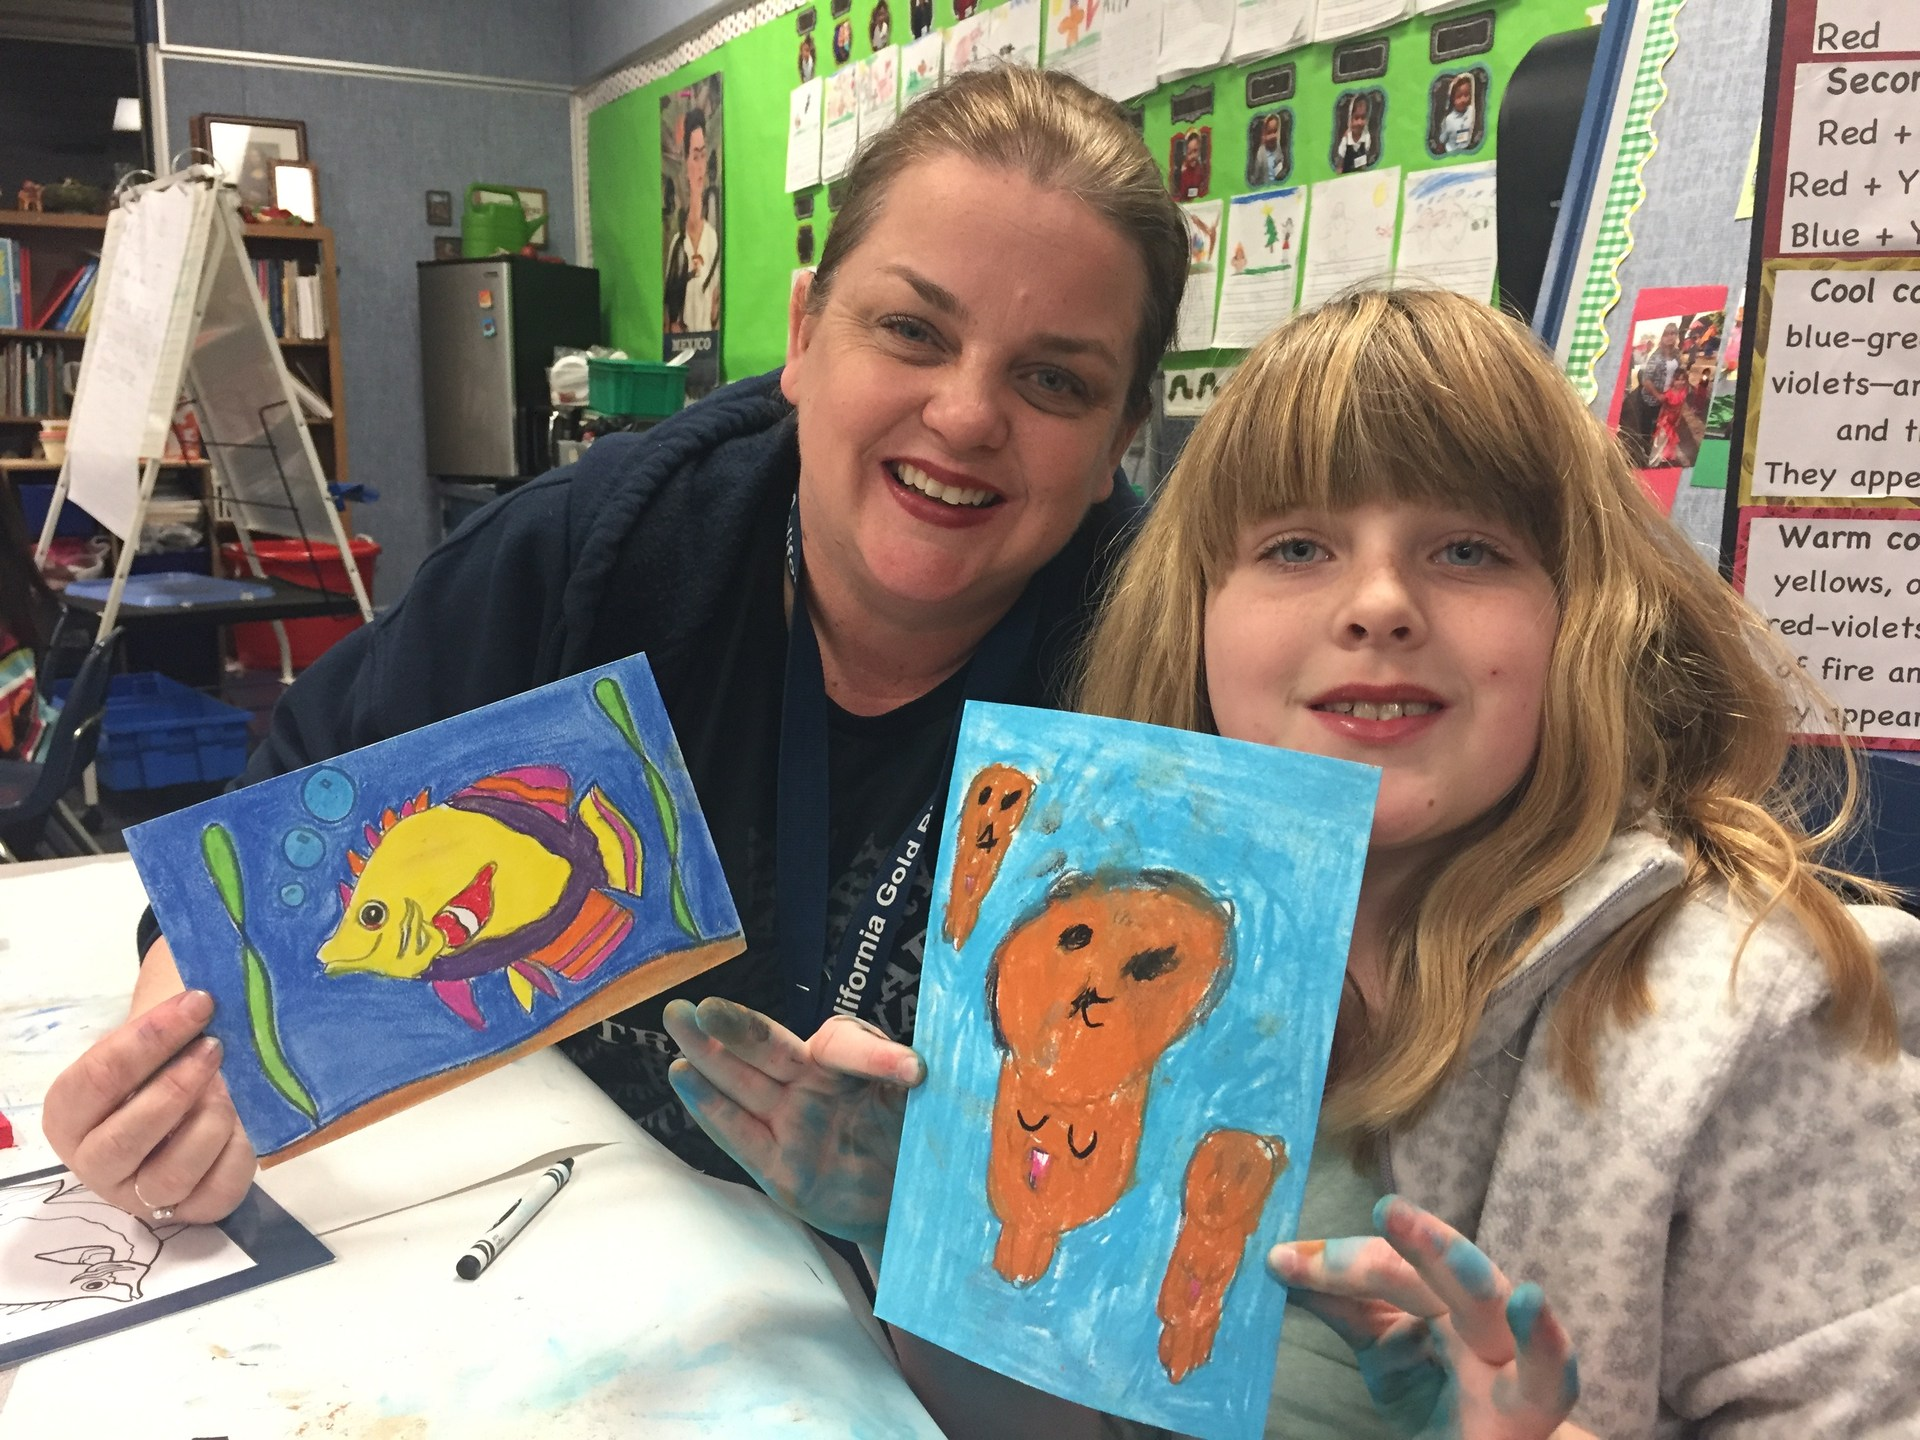 A mom and her daughter showing their drawings of a fish.